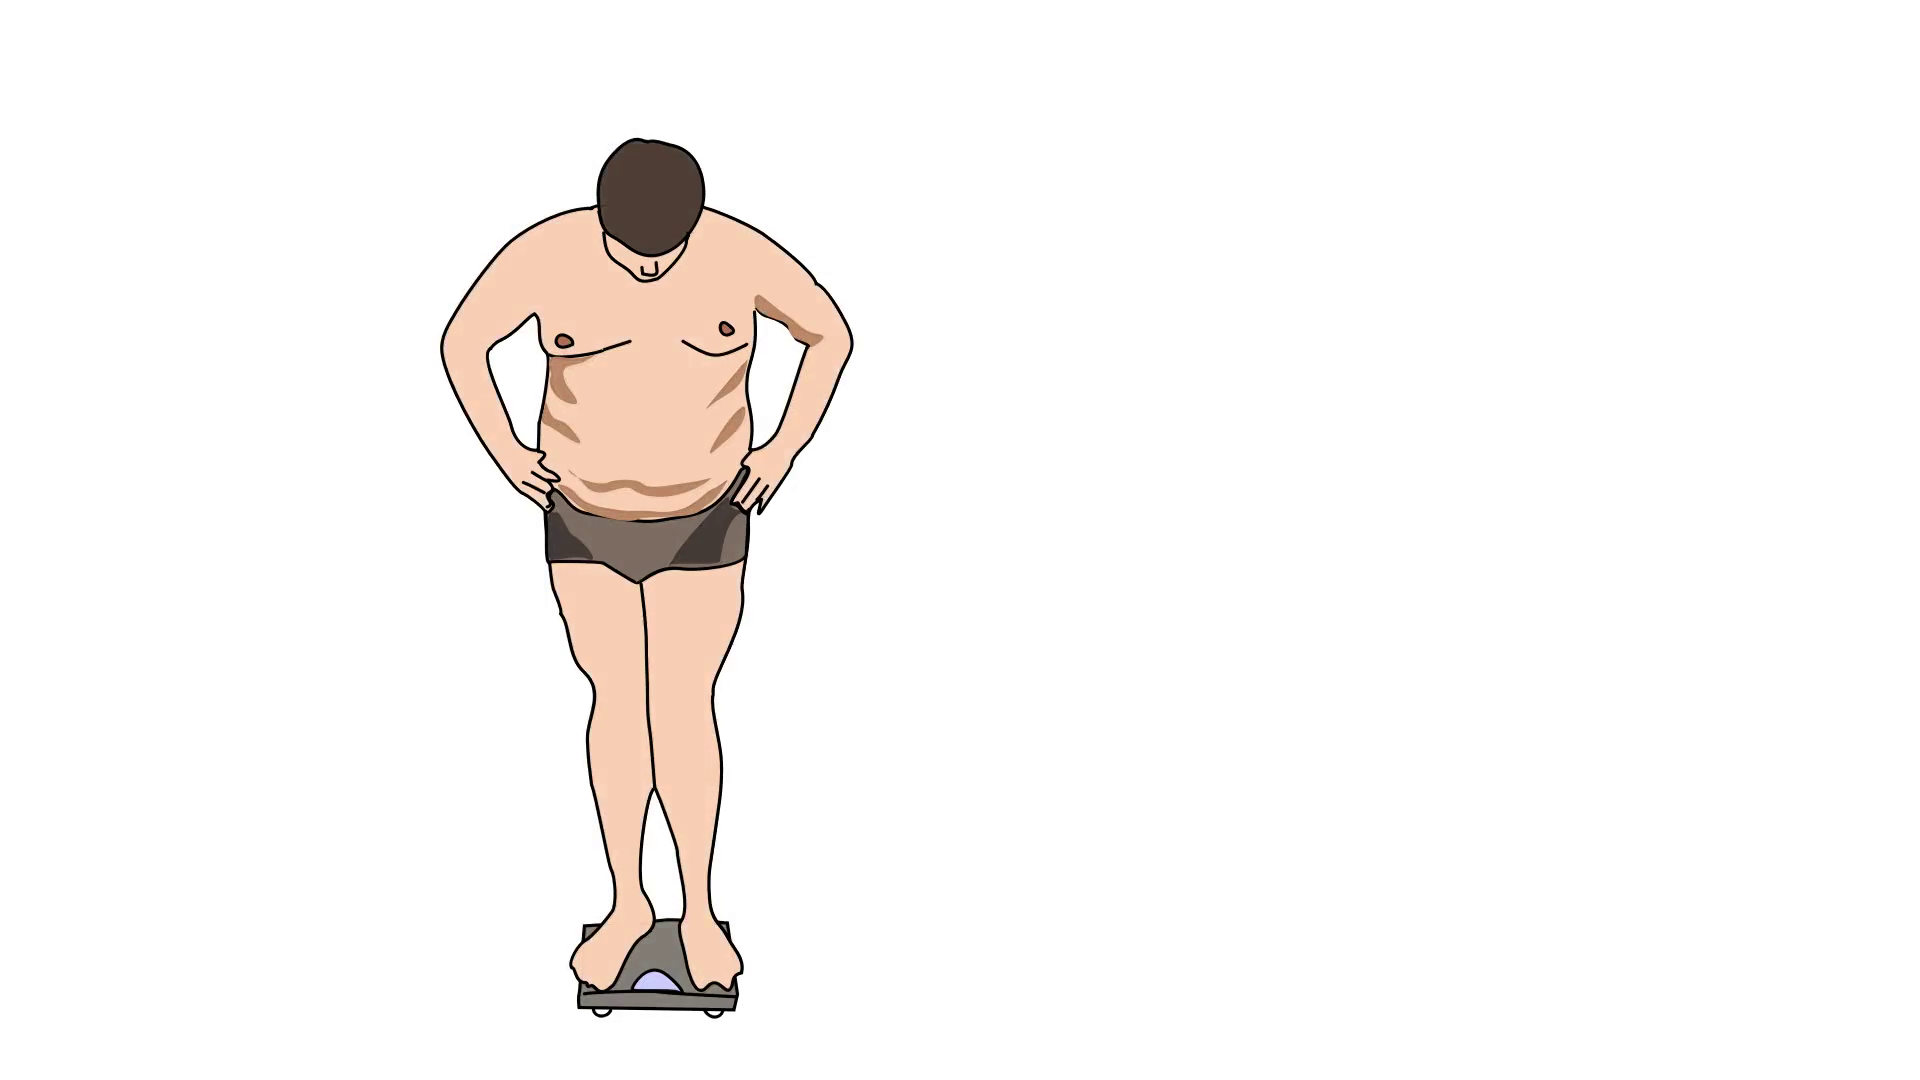 1920x1080 animated drawing of heavy obese man on scale with head down